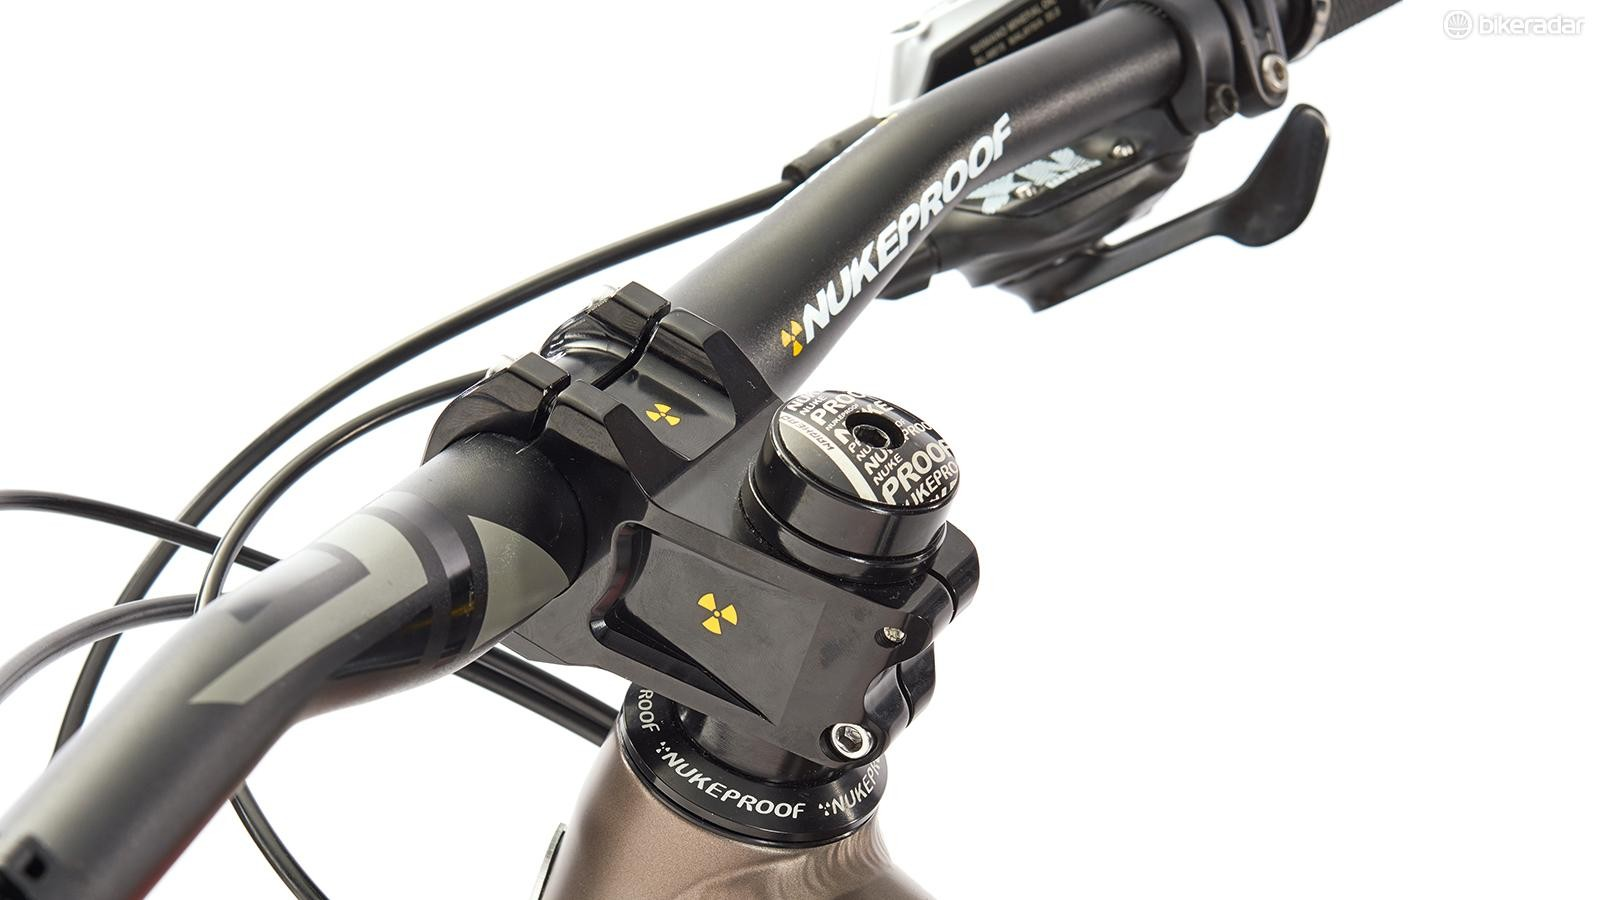 Widening your handlebar is the fastest way to give your bike serious swagger